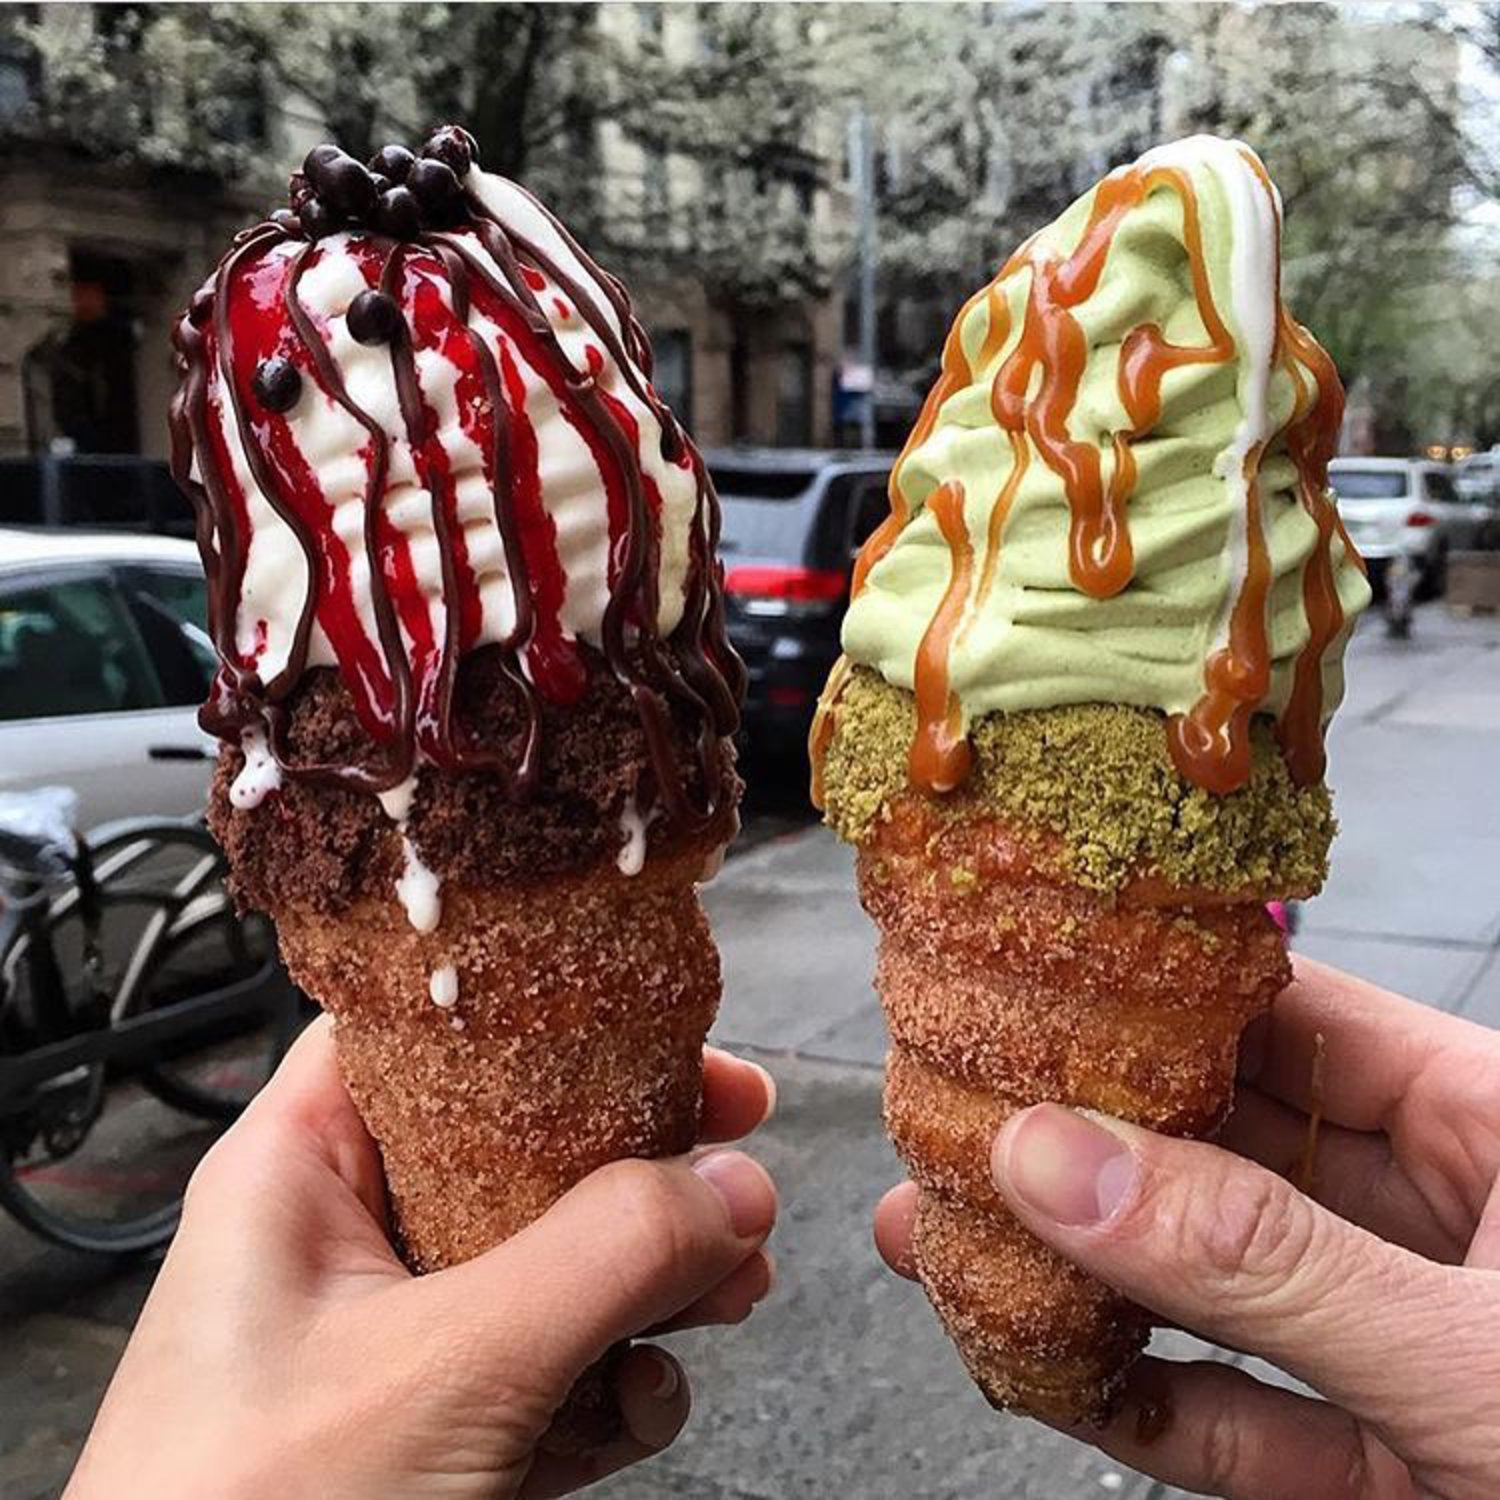 "coneCHURRO!® NYC! 1:30pm - midnight, daily.  Lookout for additional MAY FLAVORS!! *Banana Brûlée *Strawberry Shortcake, *Nutella S'mores Galore!!! Pictured: choco raspberry, green tea sea salt caramel. Photo cred: feedyourgirlfriend. JHERI CURL - sea salt caramel coated inner cone, cinnamon struessel rim with sea salt caramel drizzle.  NUTTY PROFESSOR:  nutella smeared ""inner"" cone with brown sugar pecan rim, world's tastiest tahitian vanilla bean soft serve with toasted almonds, nutella drizzle and frosted pecan top.  TWINKLE SPRINKLES:  66% Valrhona caribe chocolate ganache coated inner cone with happy dance rainbow sprinkles.  POINDEXTER:  66% Valrhona caribe chocolate ganache coated inner cone with happy dance rainbow sprinkled RIM.  CHOCO-RASPBERRY SUNDAE:  chocolate ganache/raspberry jam filling, chocolate struessel rim, raspberry and chocolate sauce drizzle.  GREEN ENVY:  red bean inner cone, green tea struessel rim, green tea/vanilla swirl, red bean top.  204 E. 10th st. @2nd Ave., NYC, BITCHESSSZz.  conechurro.com"